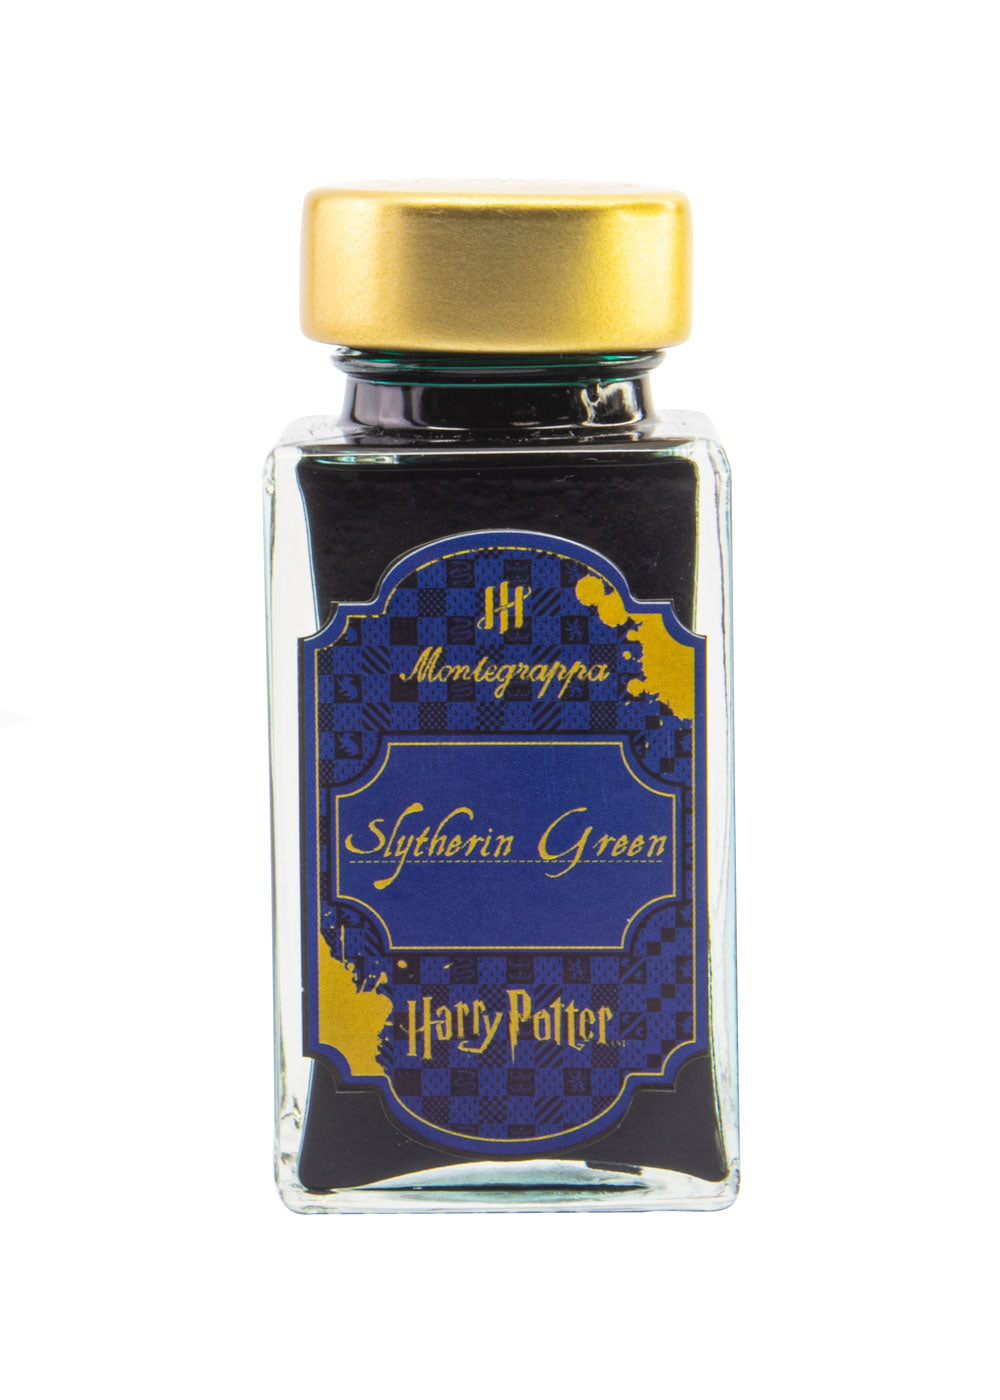 Montegrappa Harry Potter Limited Edition Ink Slytherin Green